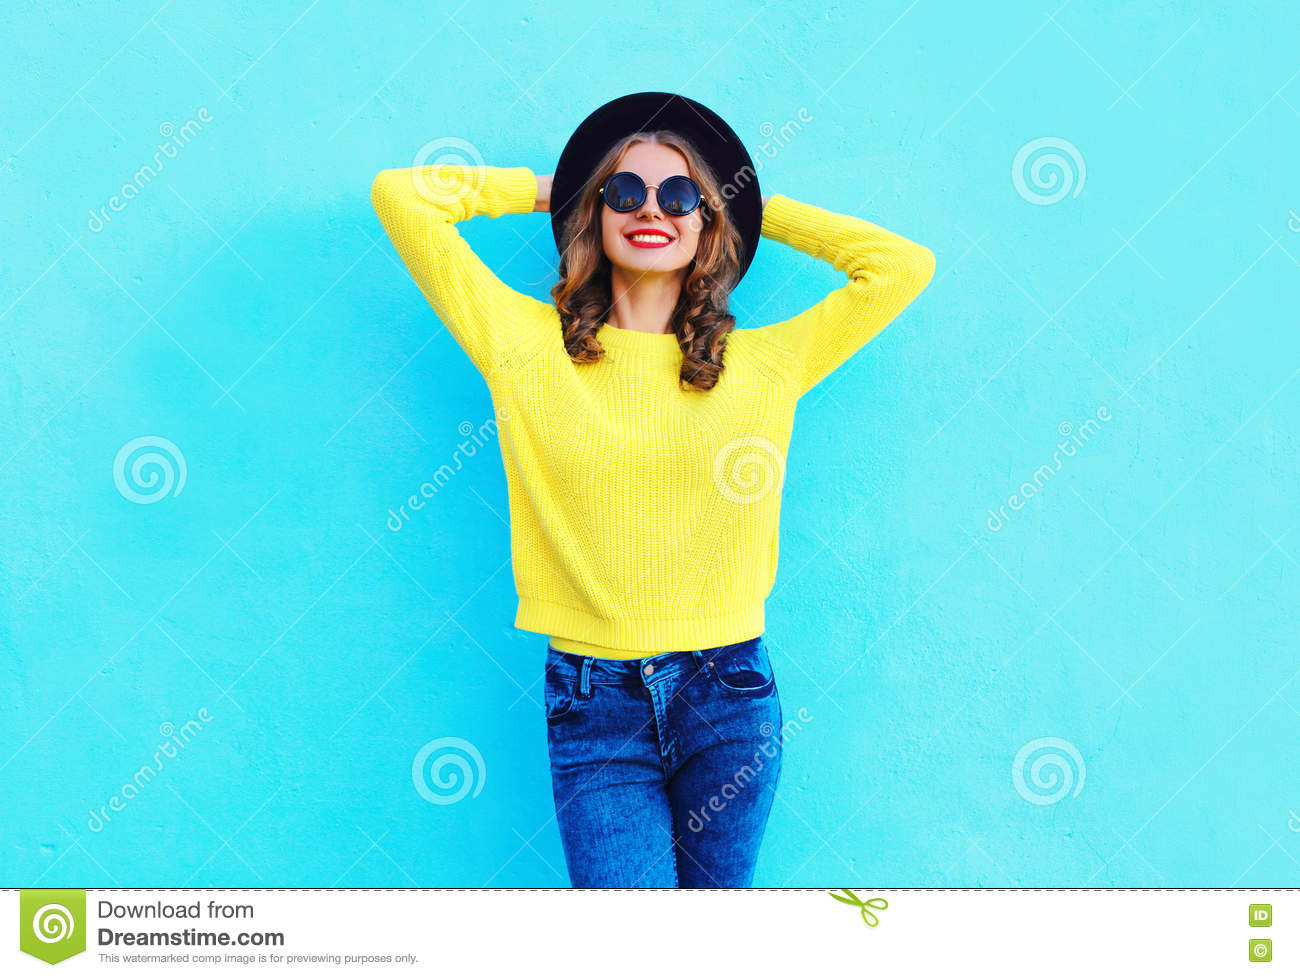 Fashion happy pretty smiling woman wearing a black hat and yellow knitted sweater over colorful blue